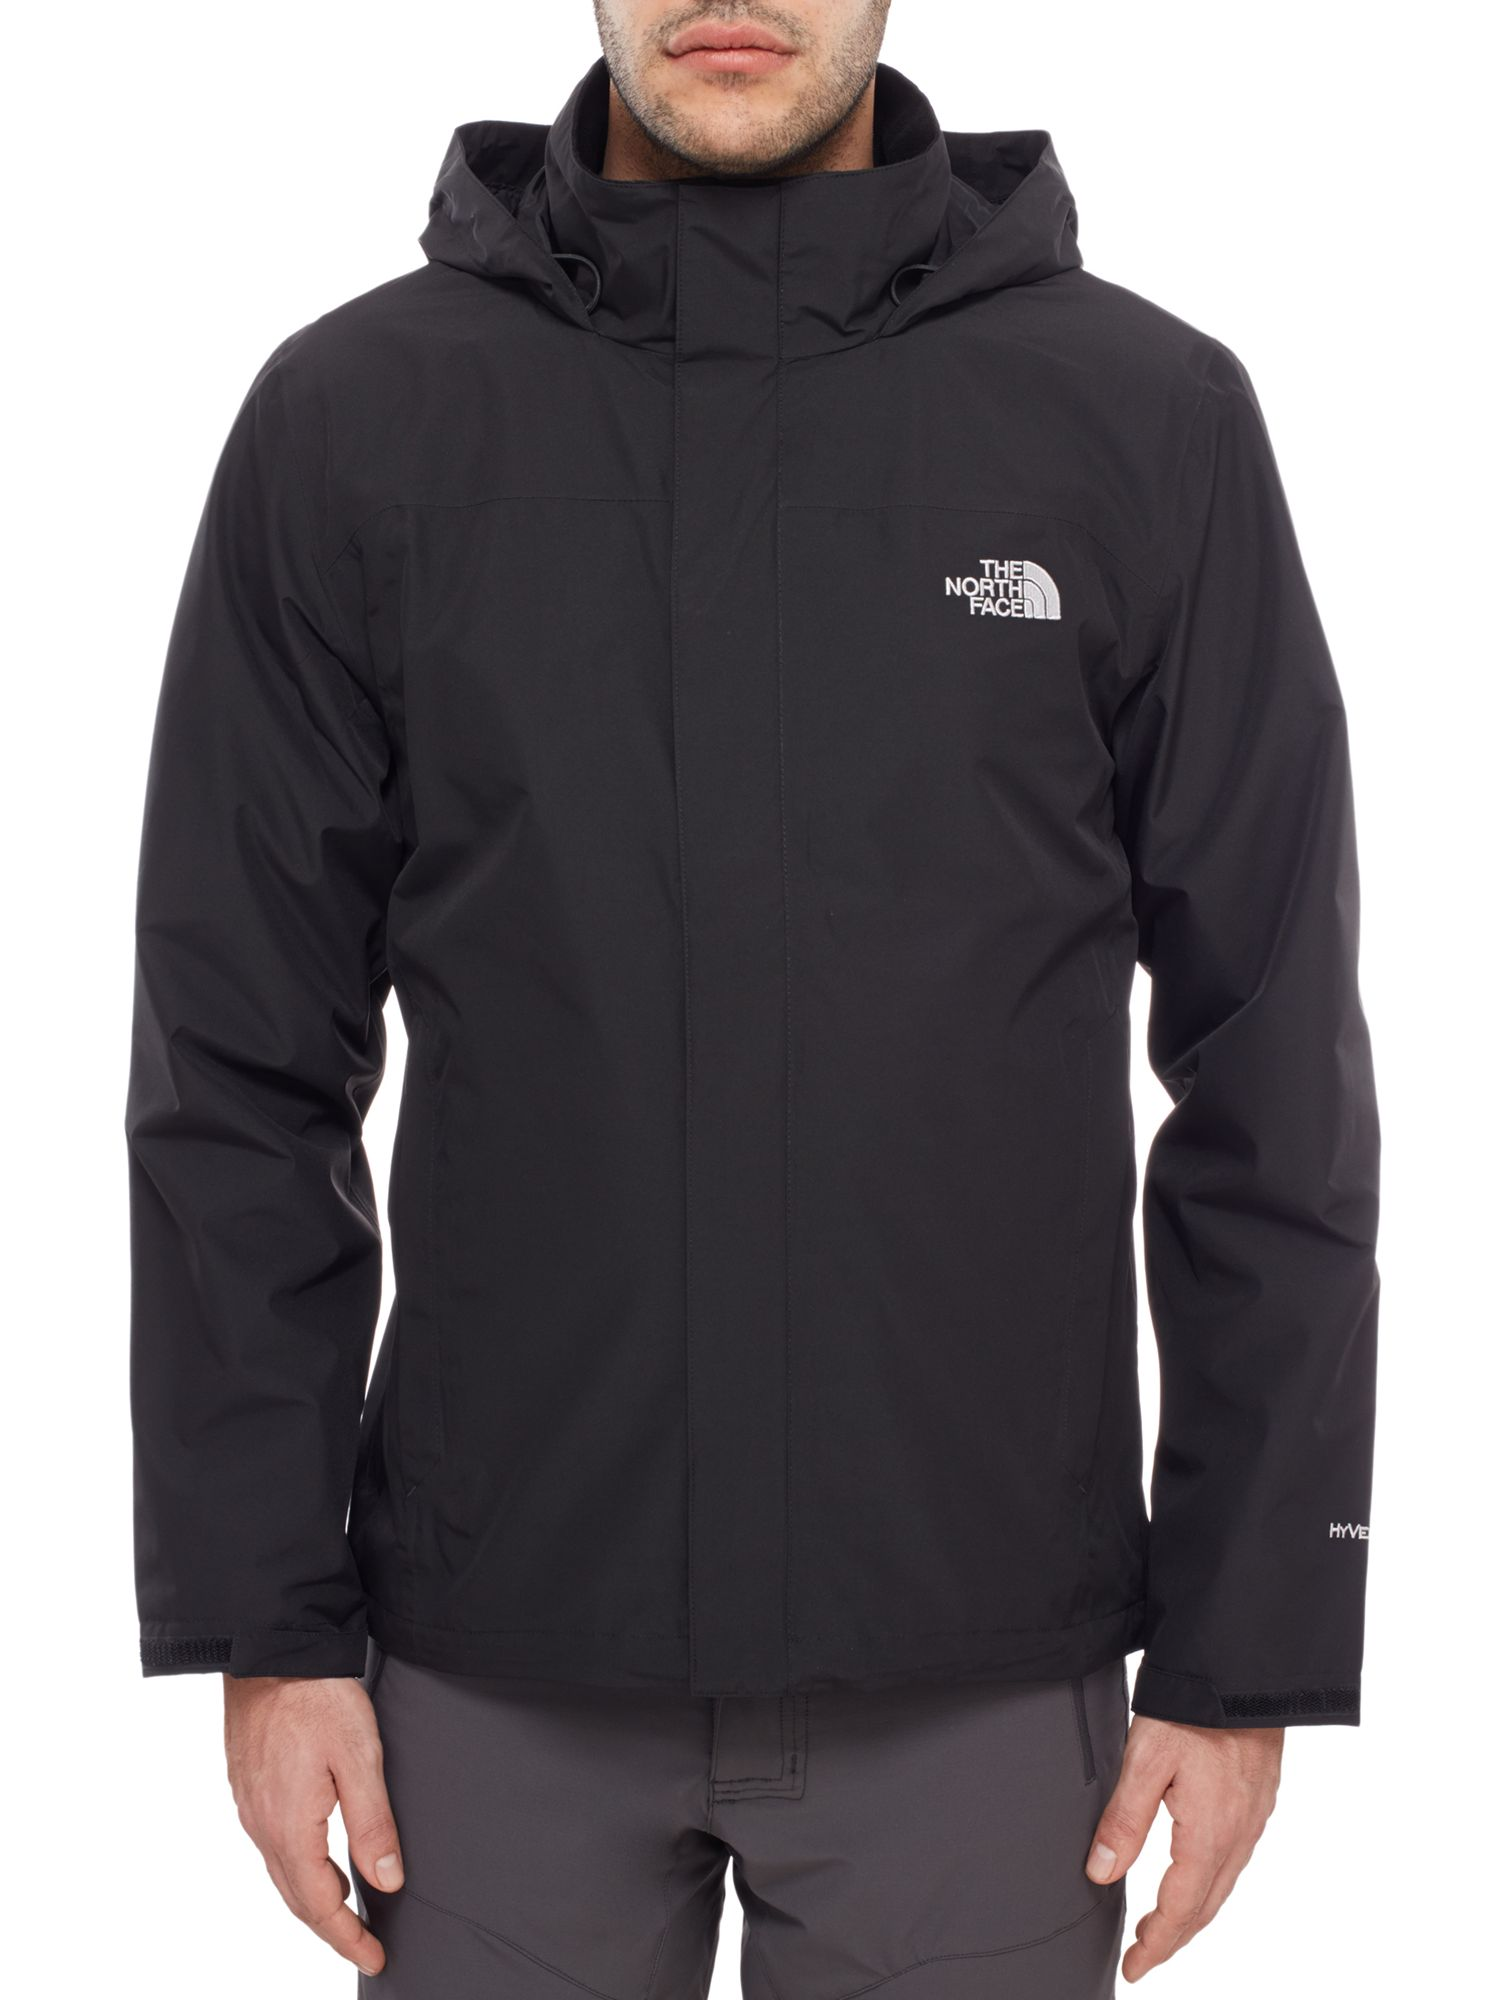 The North Face The North Face Sangro Waterproof Men's Jacket, Black